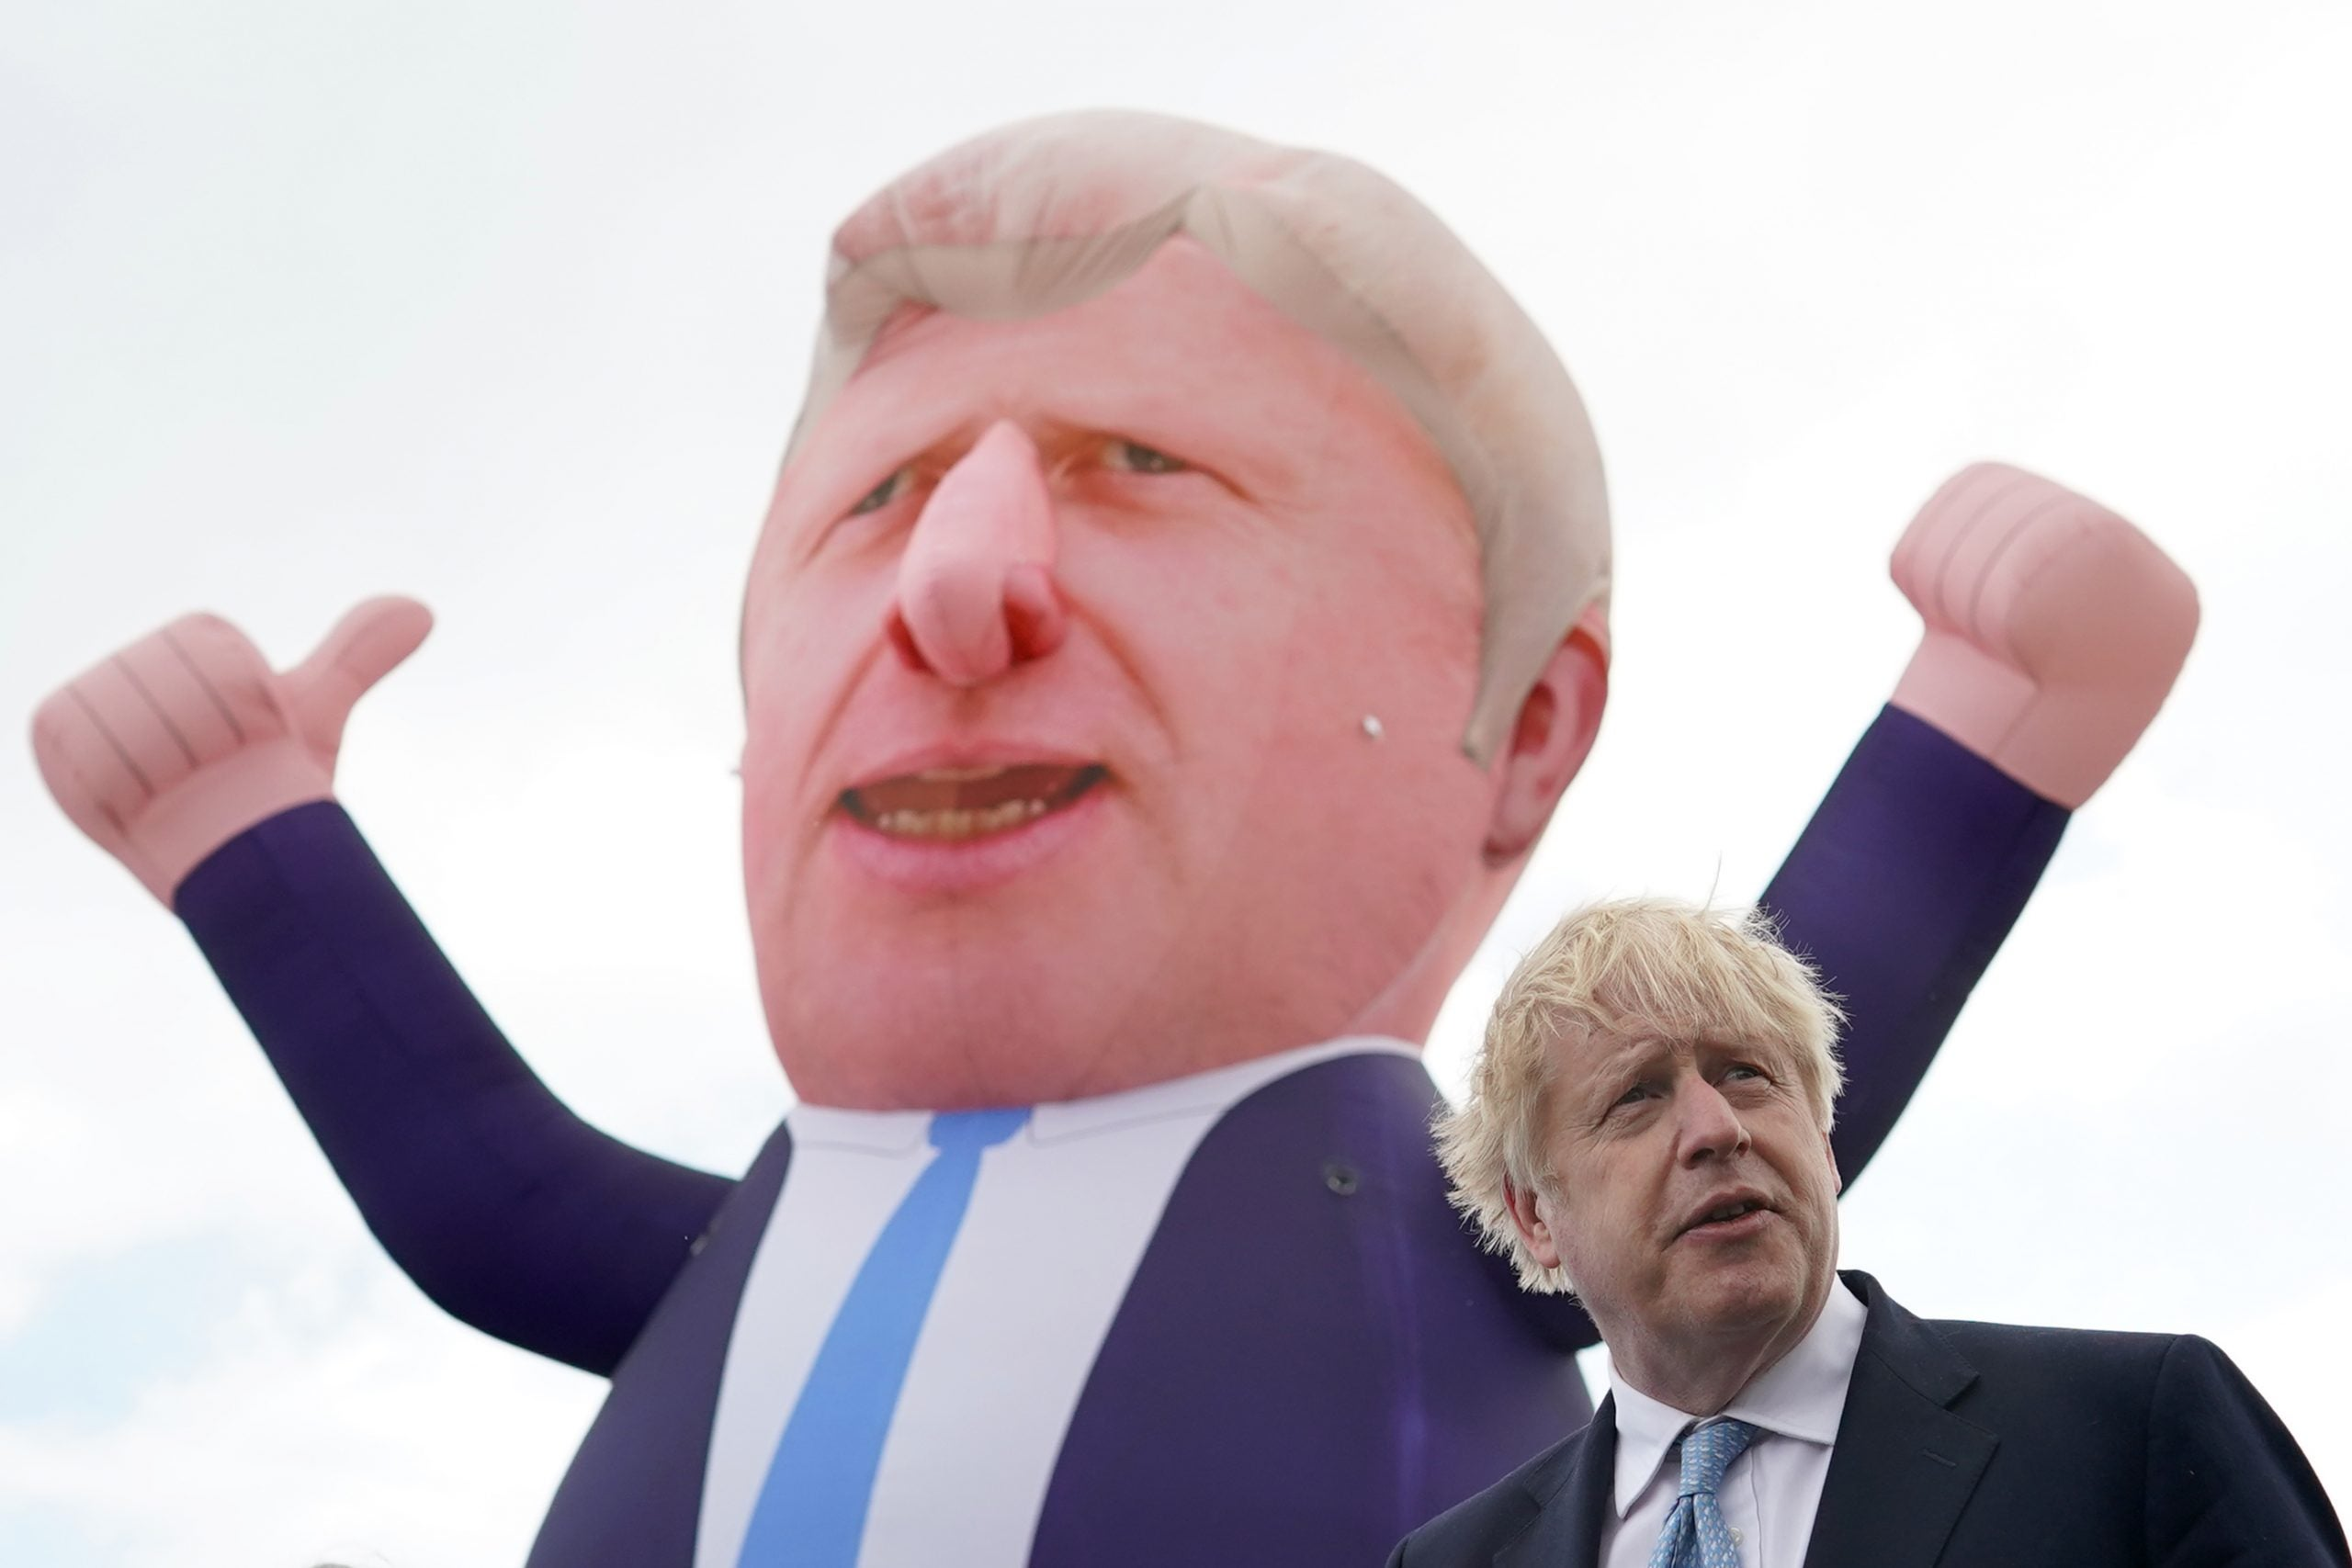 Politics is turning on its axis – and the one politician who gets this is Boris Johnson